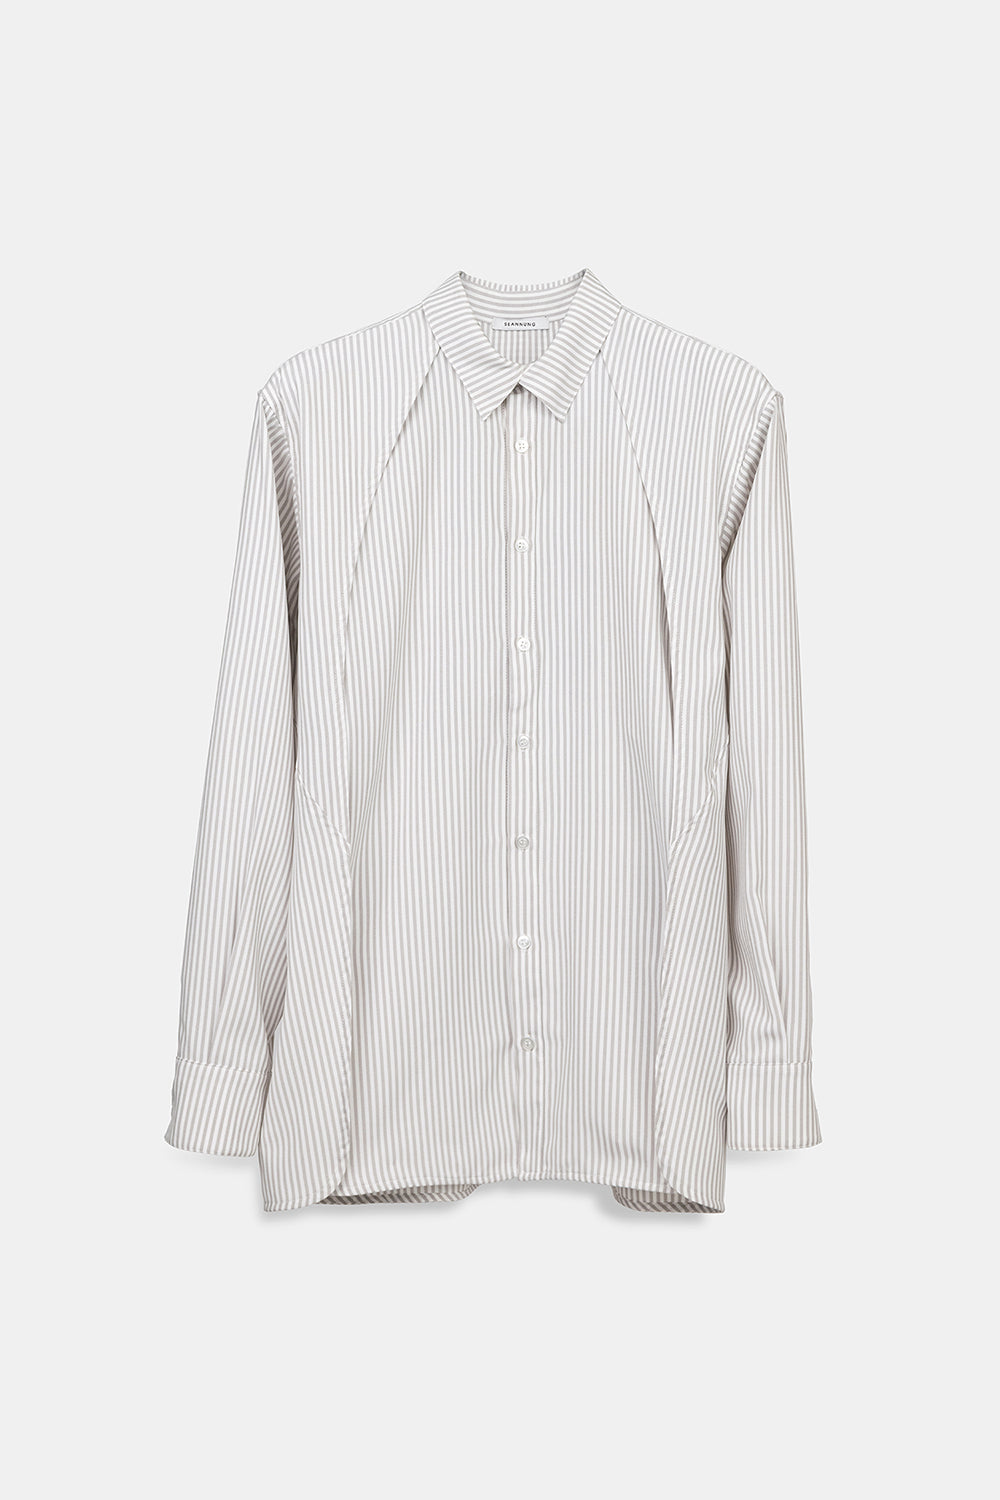 SEANNUNG - 條紋披肩襯衫 Striped Pattern Double Layered Shoulder Detail Shirt- Men